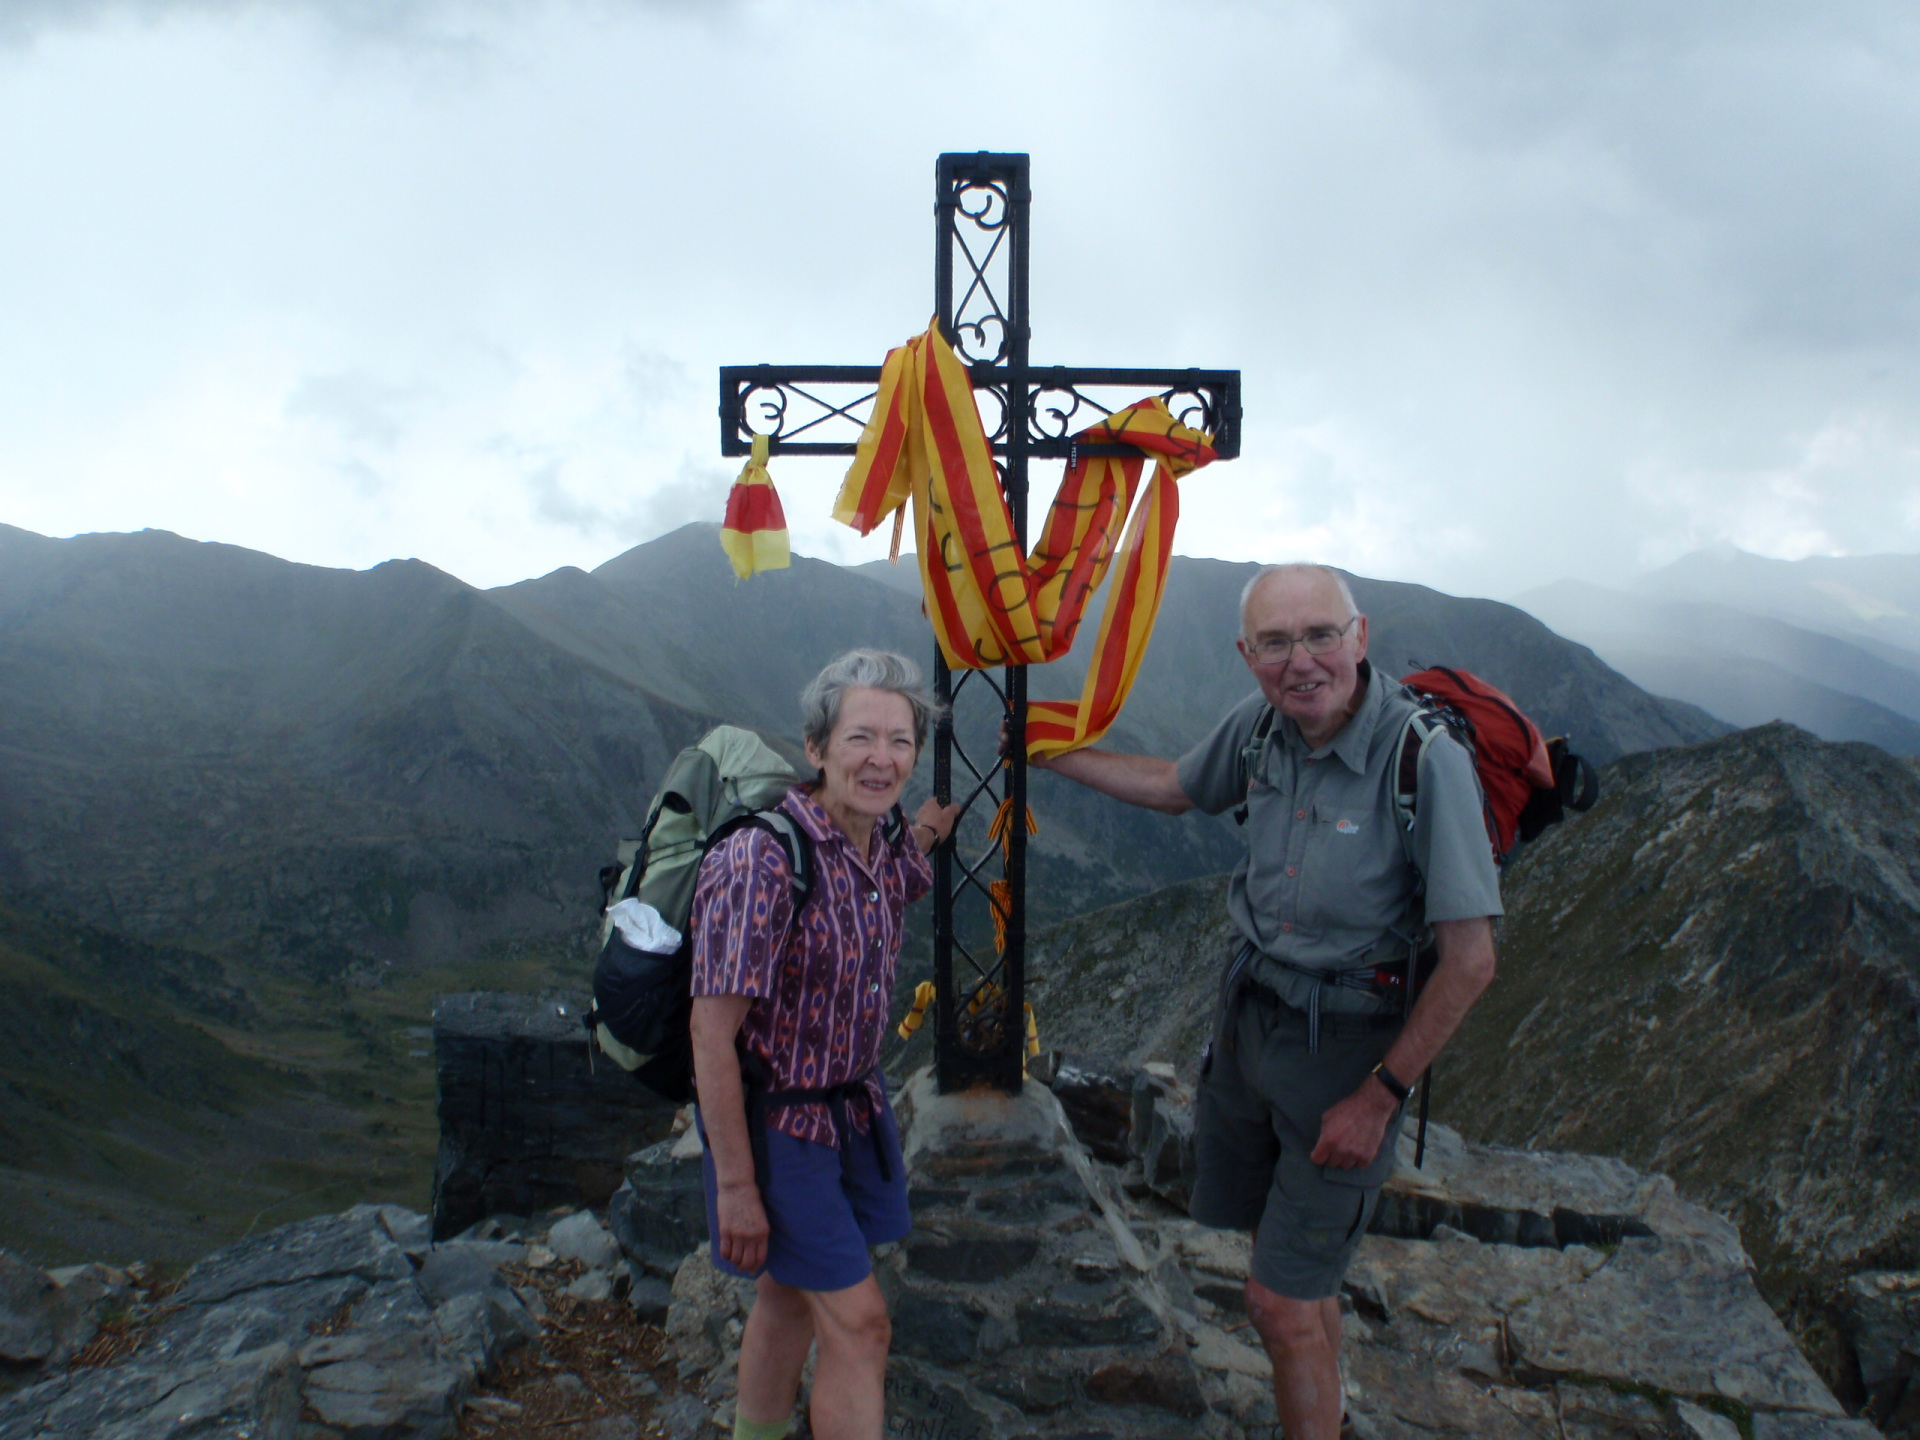 Talk: On foot along the mountain frontier of the Pyrenees